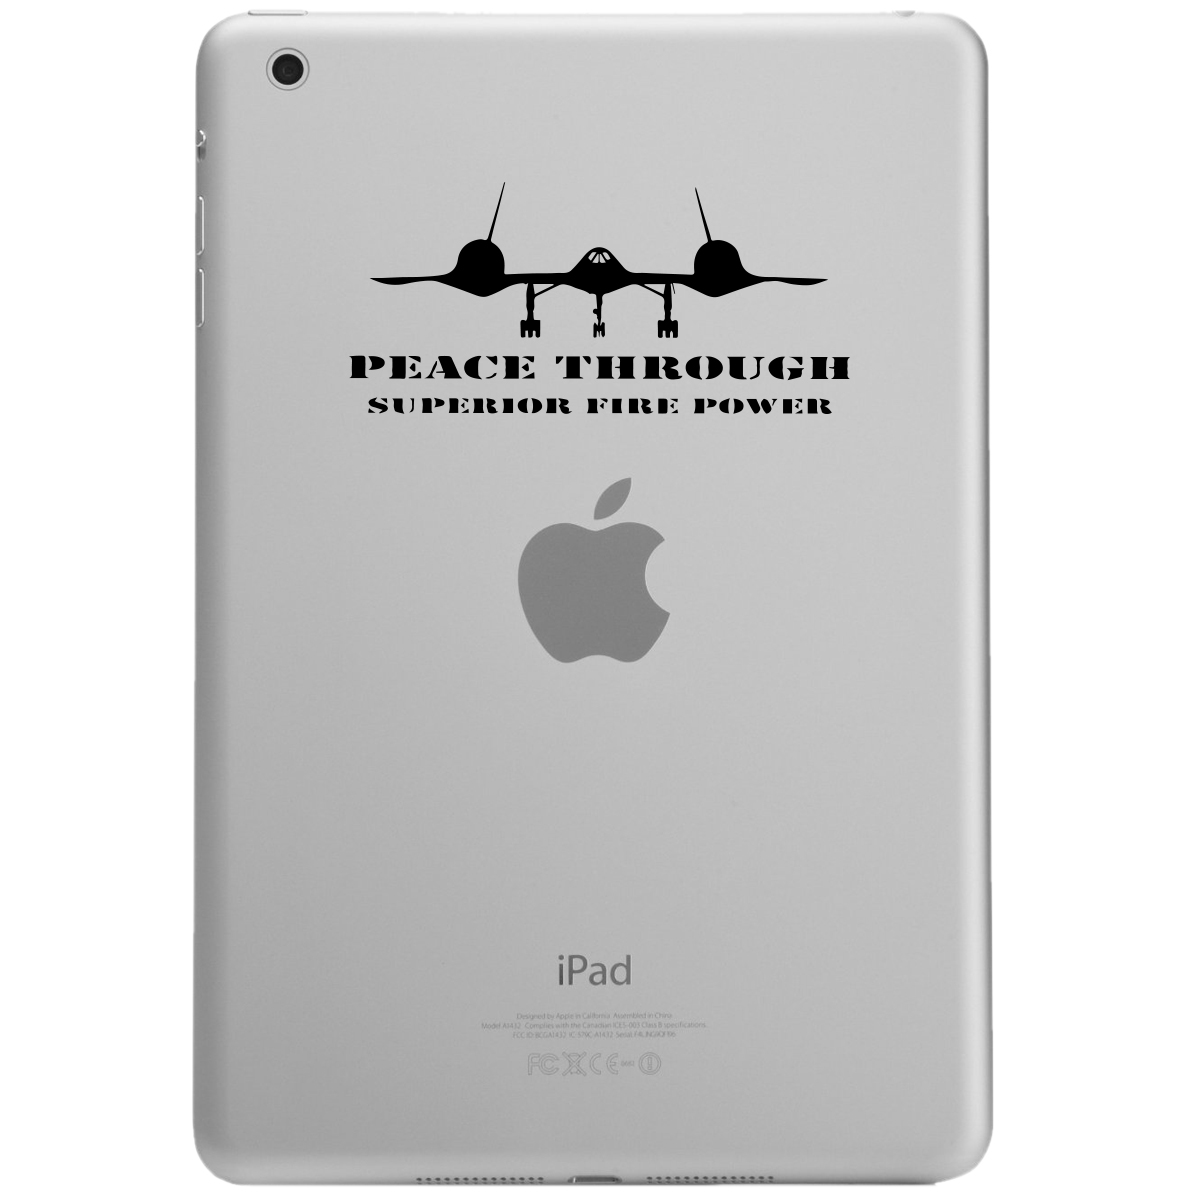 Peace Through Superior Firepower Patriotic iPad Tablet Vinyl Sticker Decal